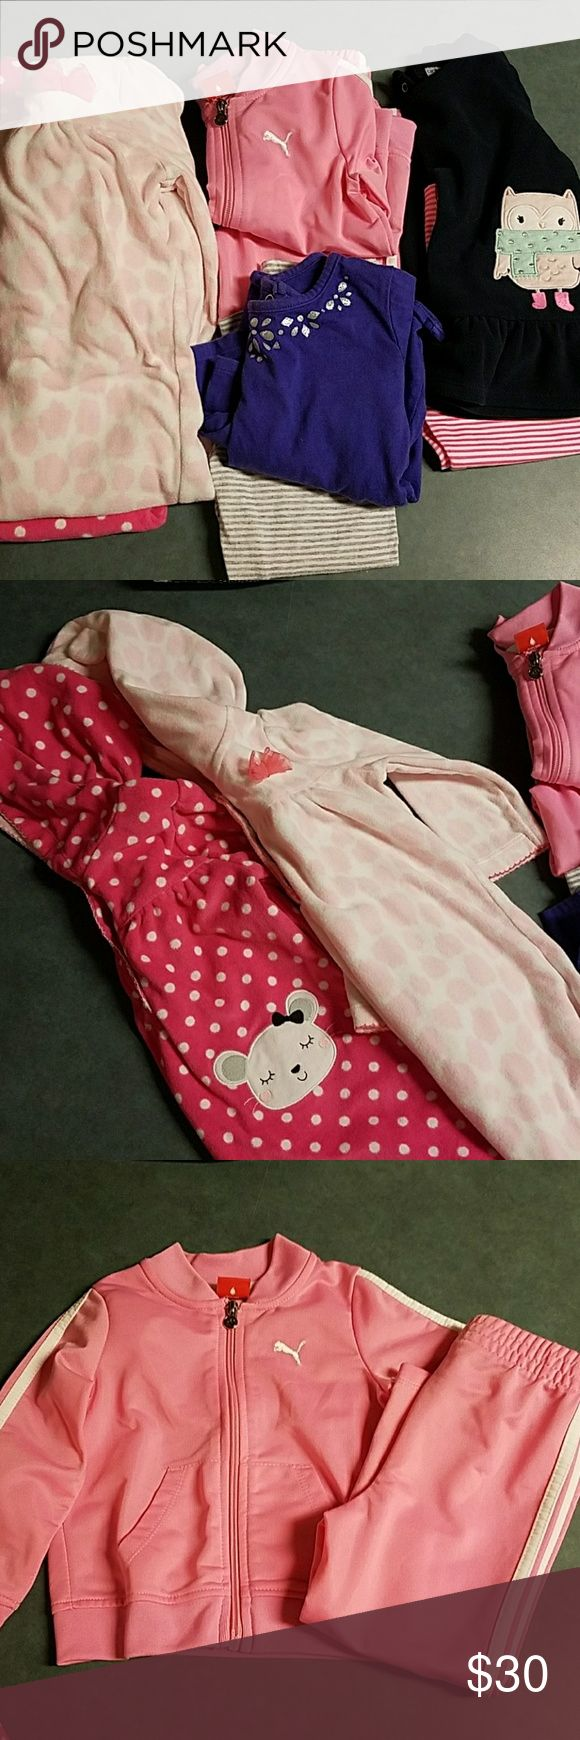 Bundle of 24m & 2T 2 carters 24m fleece hooded onesies (snaps from neck to ankles), pink puma 24m track suit, carters 24m owl fleece top with leggings (leggings never worn),  carters 24m purple long sleeve top with leggings, 2 carters sets 24m 3/4 sleeve with leggings, 1 black 24 month sweater. 2T portion of bundle as follows; carters long sleeve, carters b&w tshirt, carters denim colored leggings, finding dory tshirt, okie dokie owl dress/tunic, healthtex stripe & polka dot dress and 1…